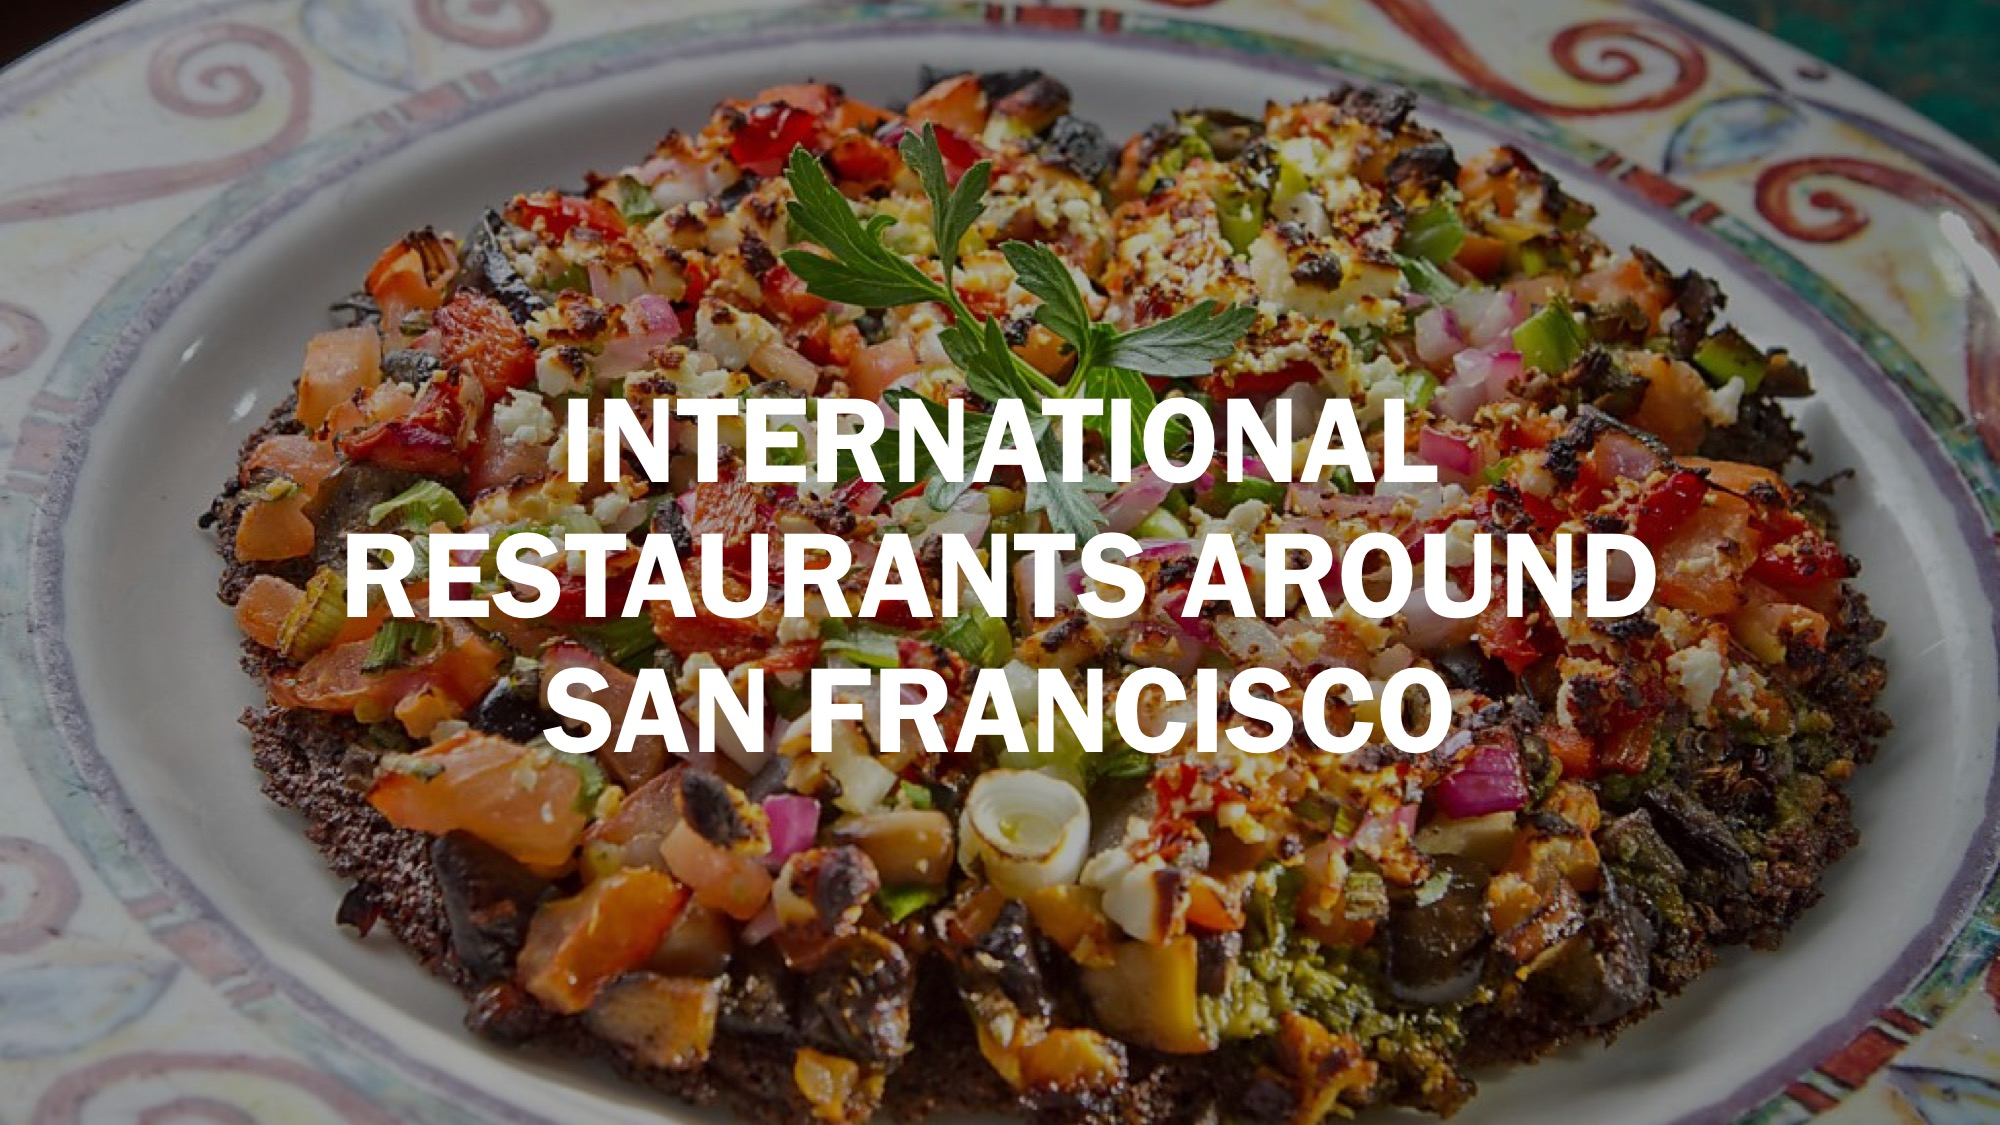 Eat your way around the world without leaving San Francisco - SFGate